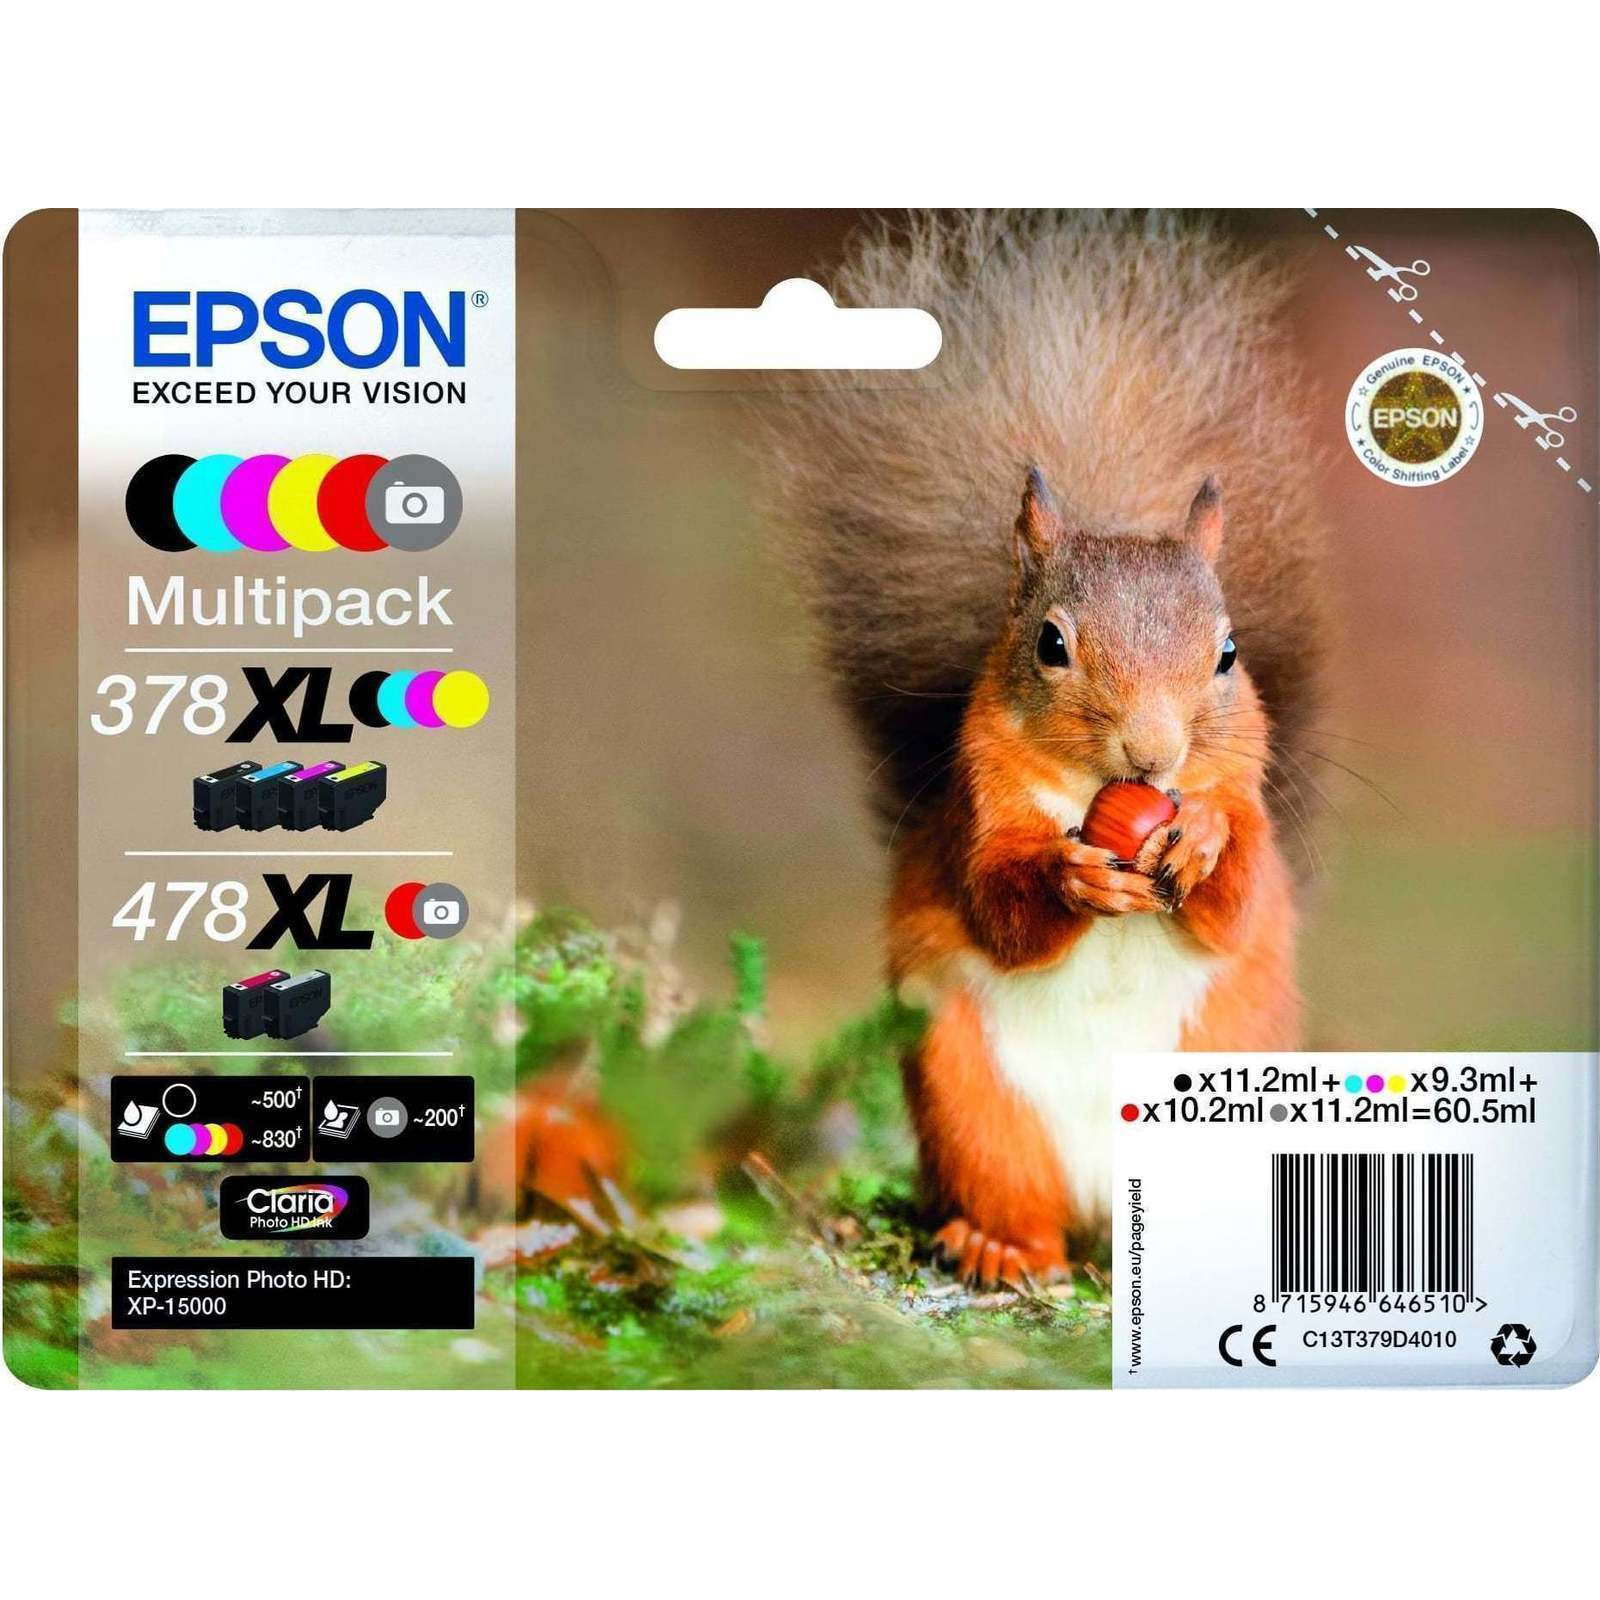 Original Epson 378XL / 478XL Multipack Set Of 6 High Capacity Ink Cartridges (C13T379D4010)